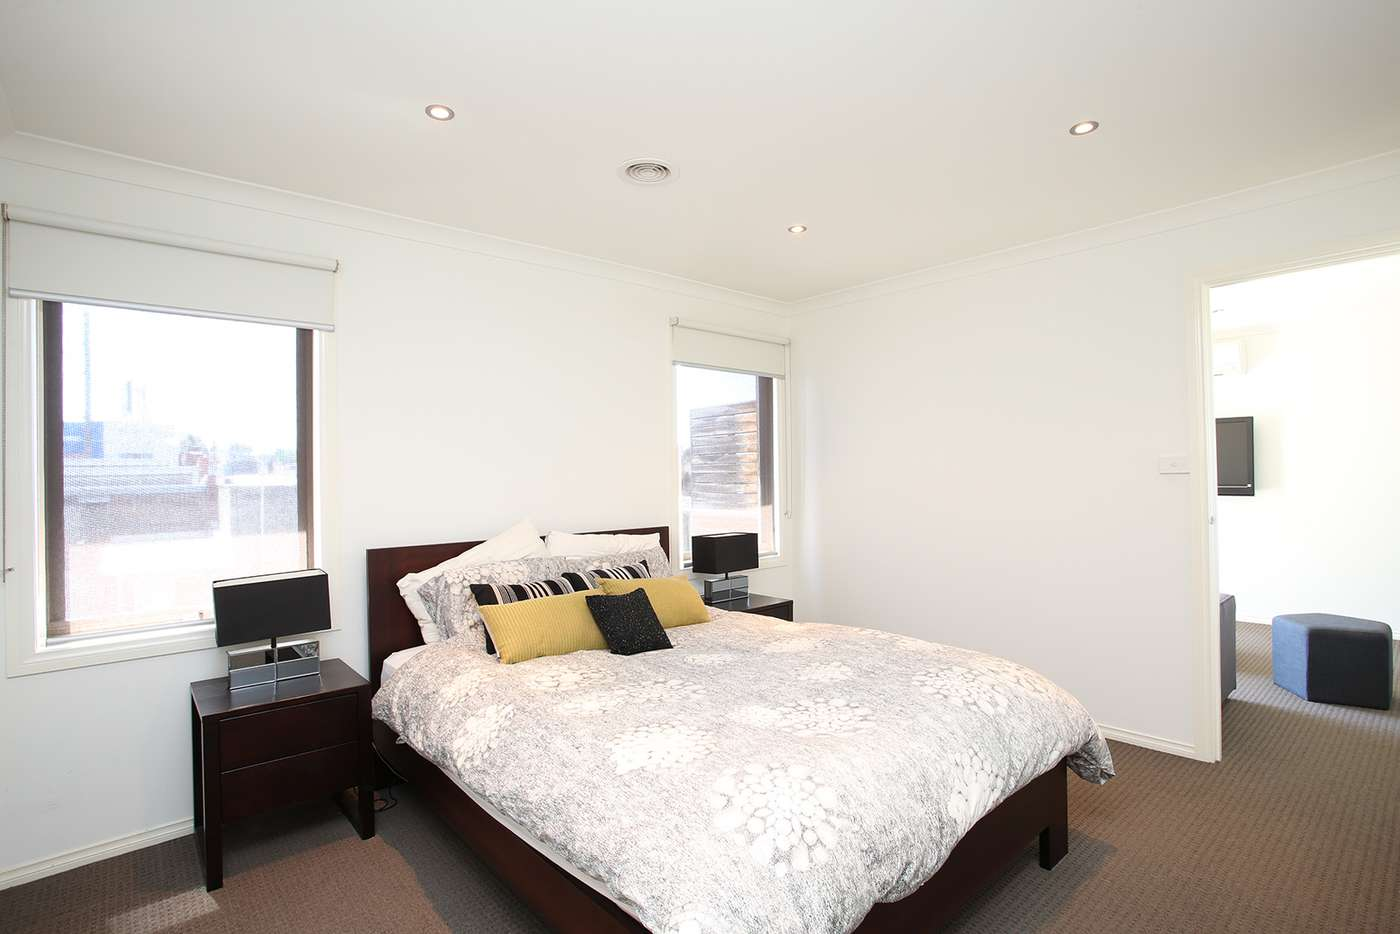 Main view of Homely apartment listing, 2/24 Dunlop Avenue, Ormond VIC 3204